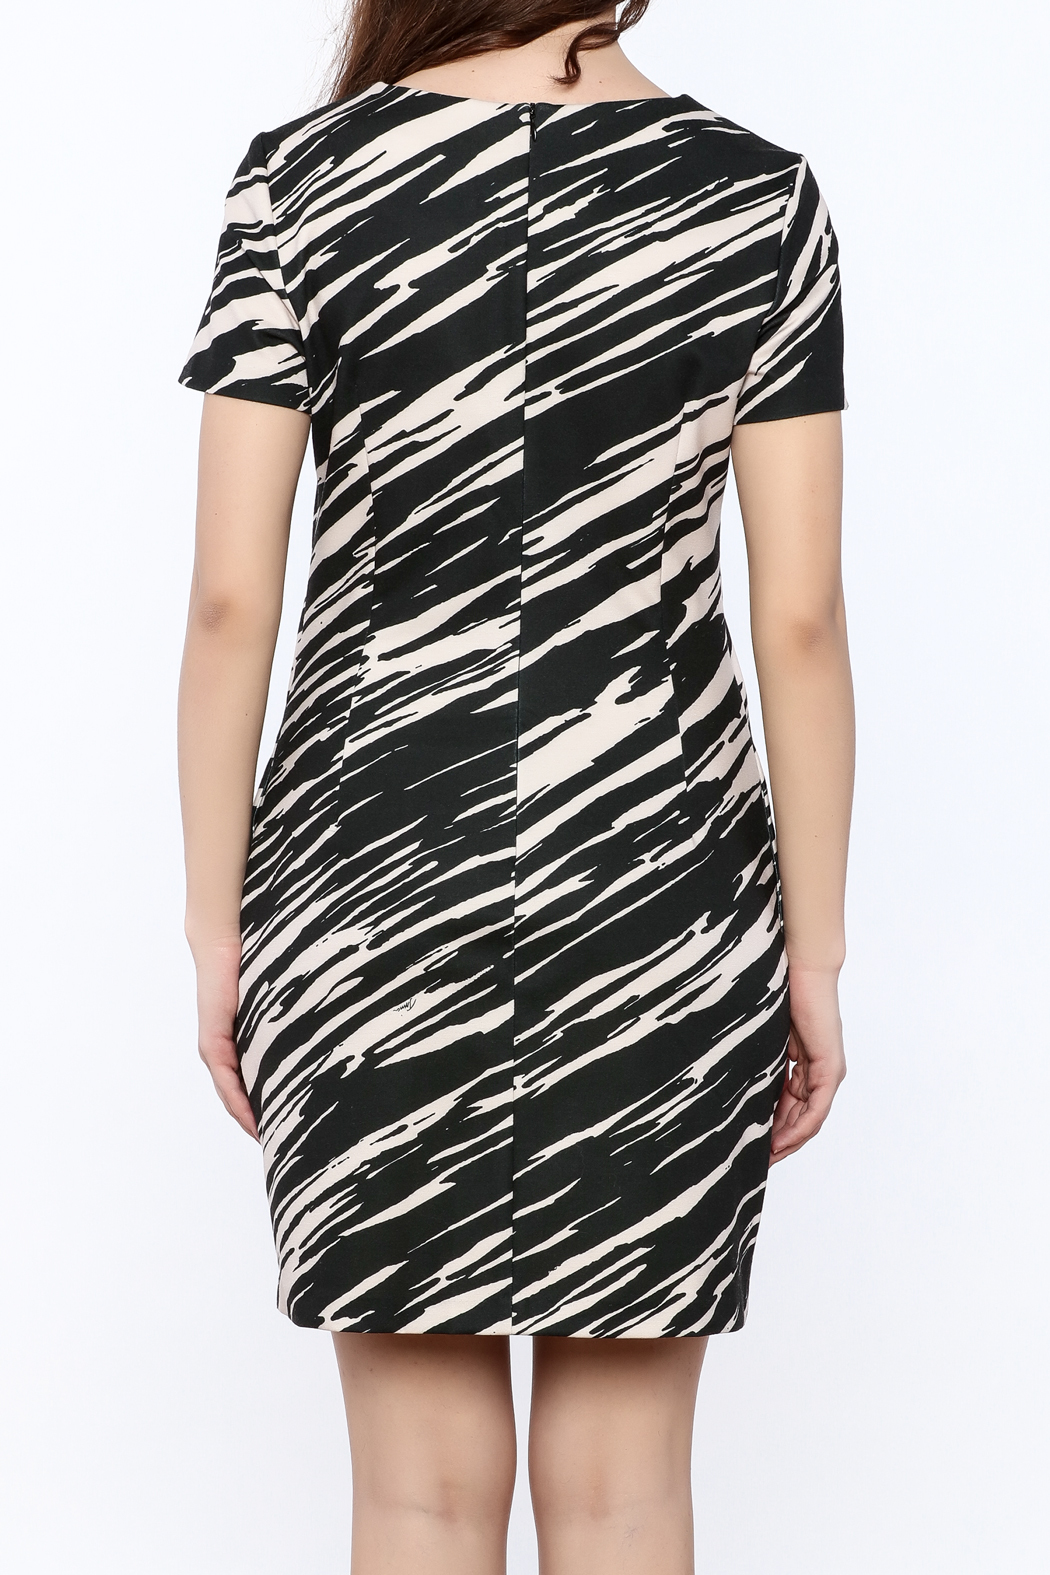 Trina by Trina Turk Zebra Mini Dress - Back Cropped Image